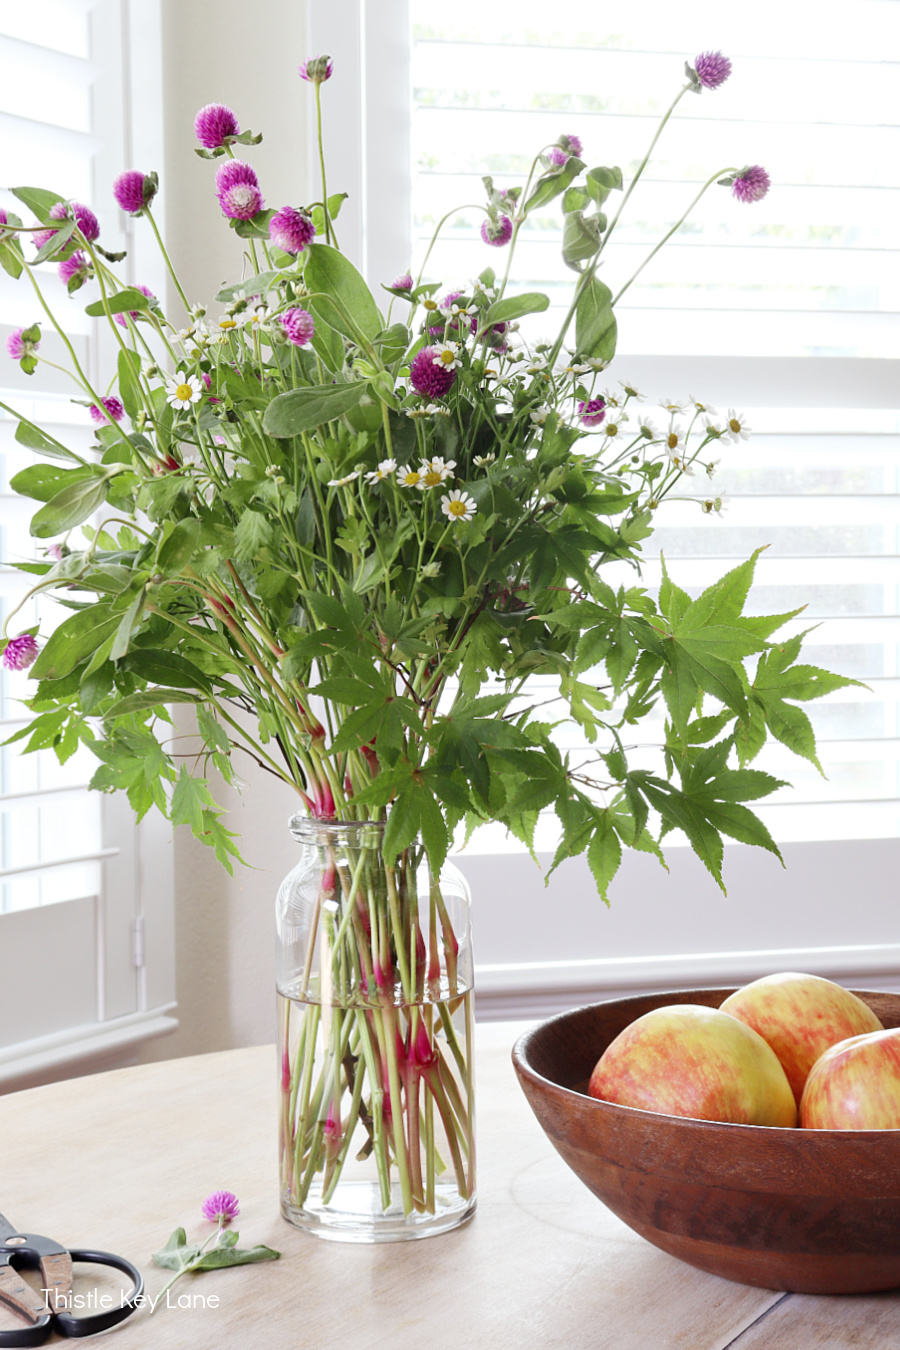 Bachelor button and camomile flower arrangement with a bowl of apples.